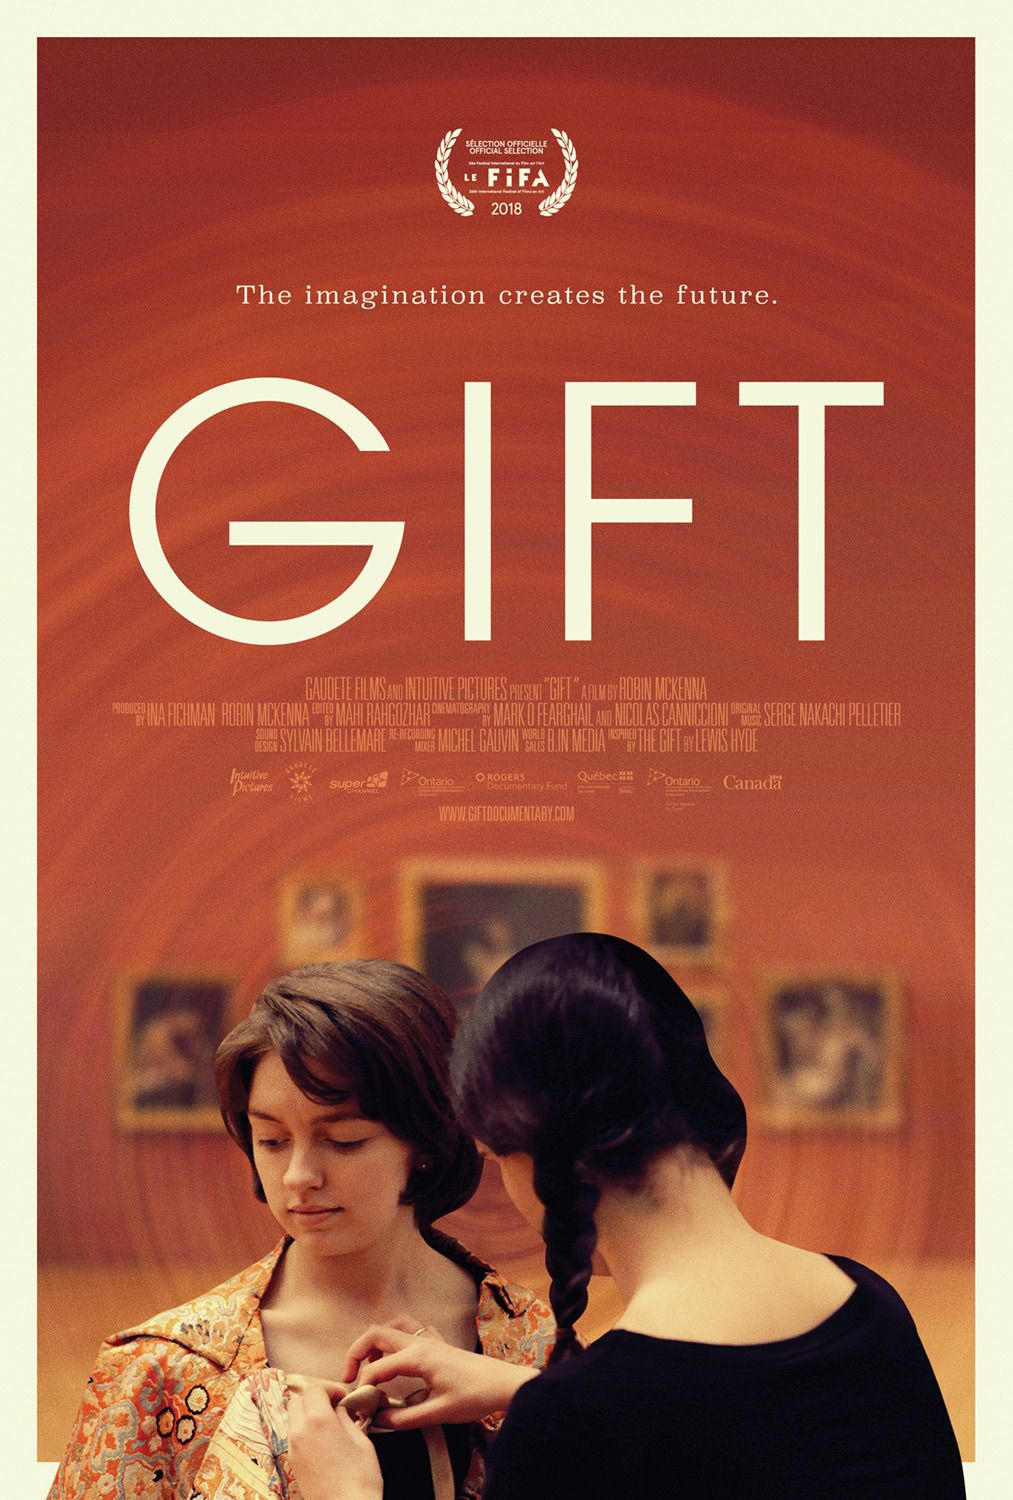 Gift - The imagination creates the future - film poster